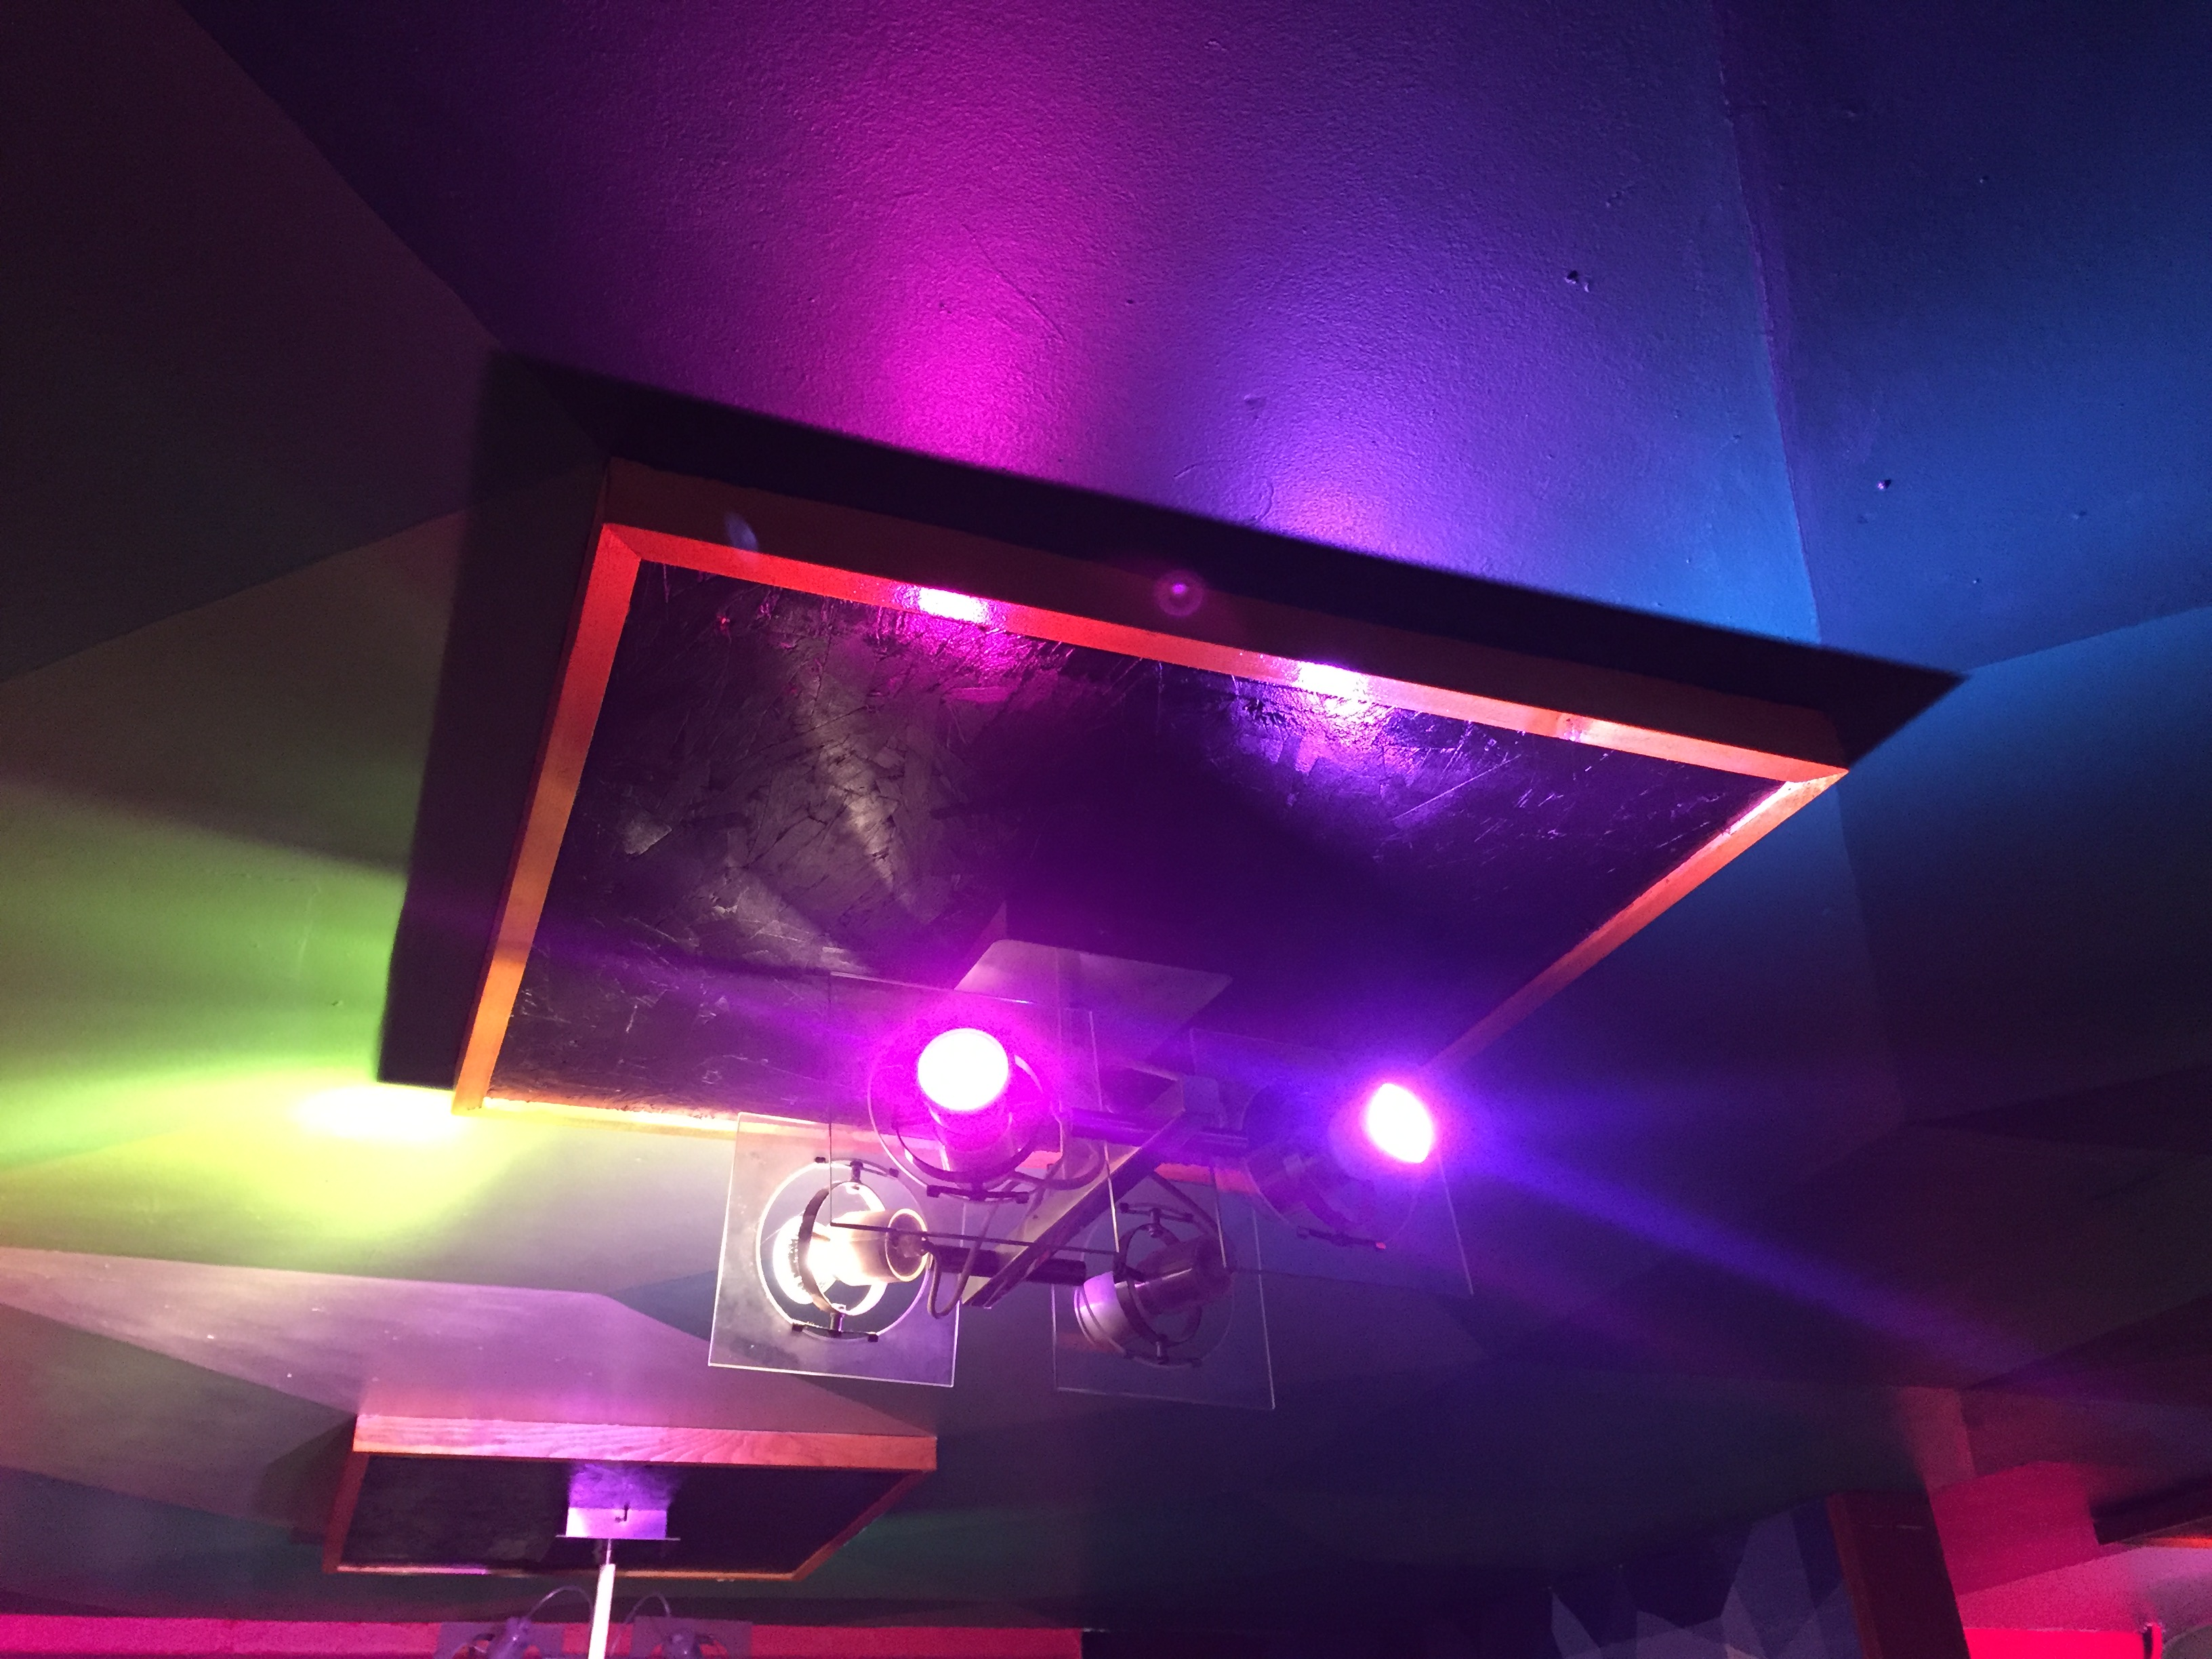 Music Studio Ceiling